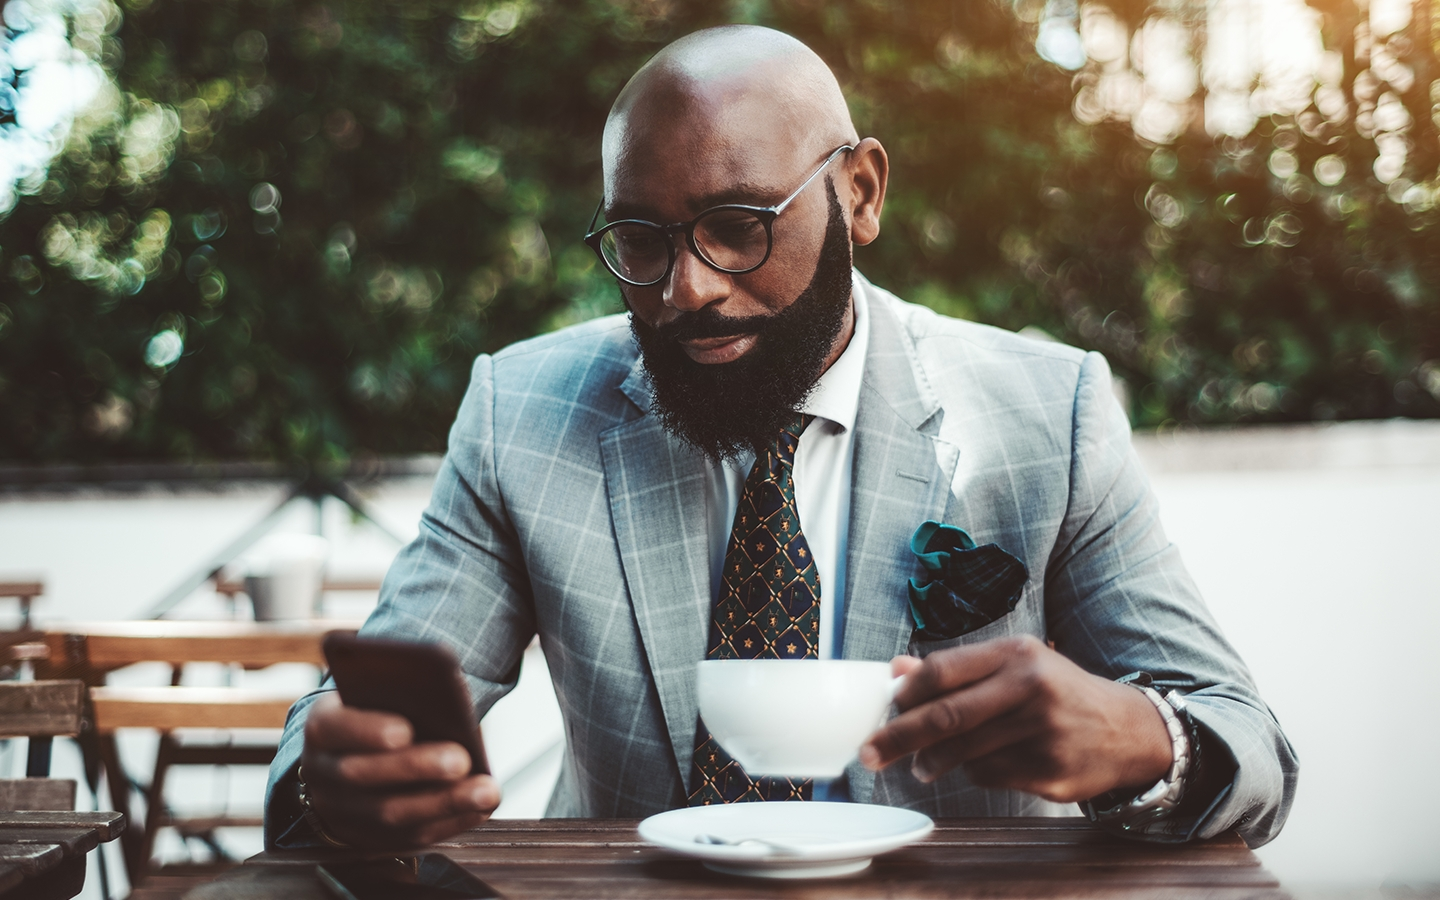 African American man in suit looking at phone over coffee.